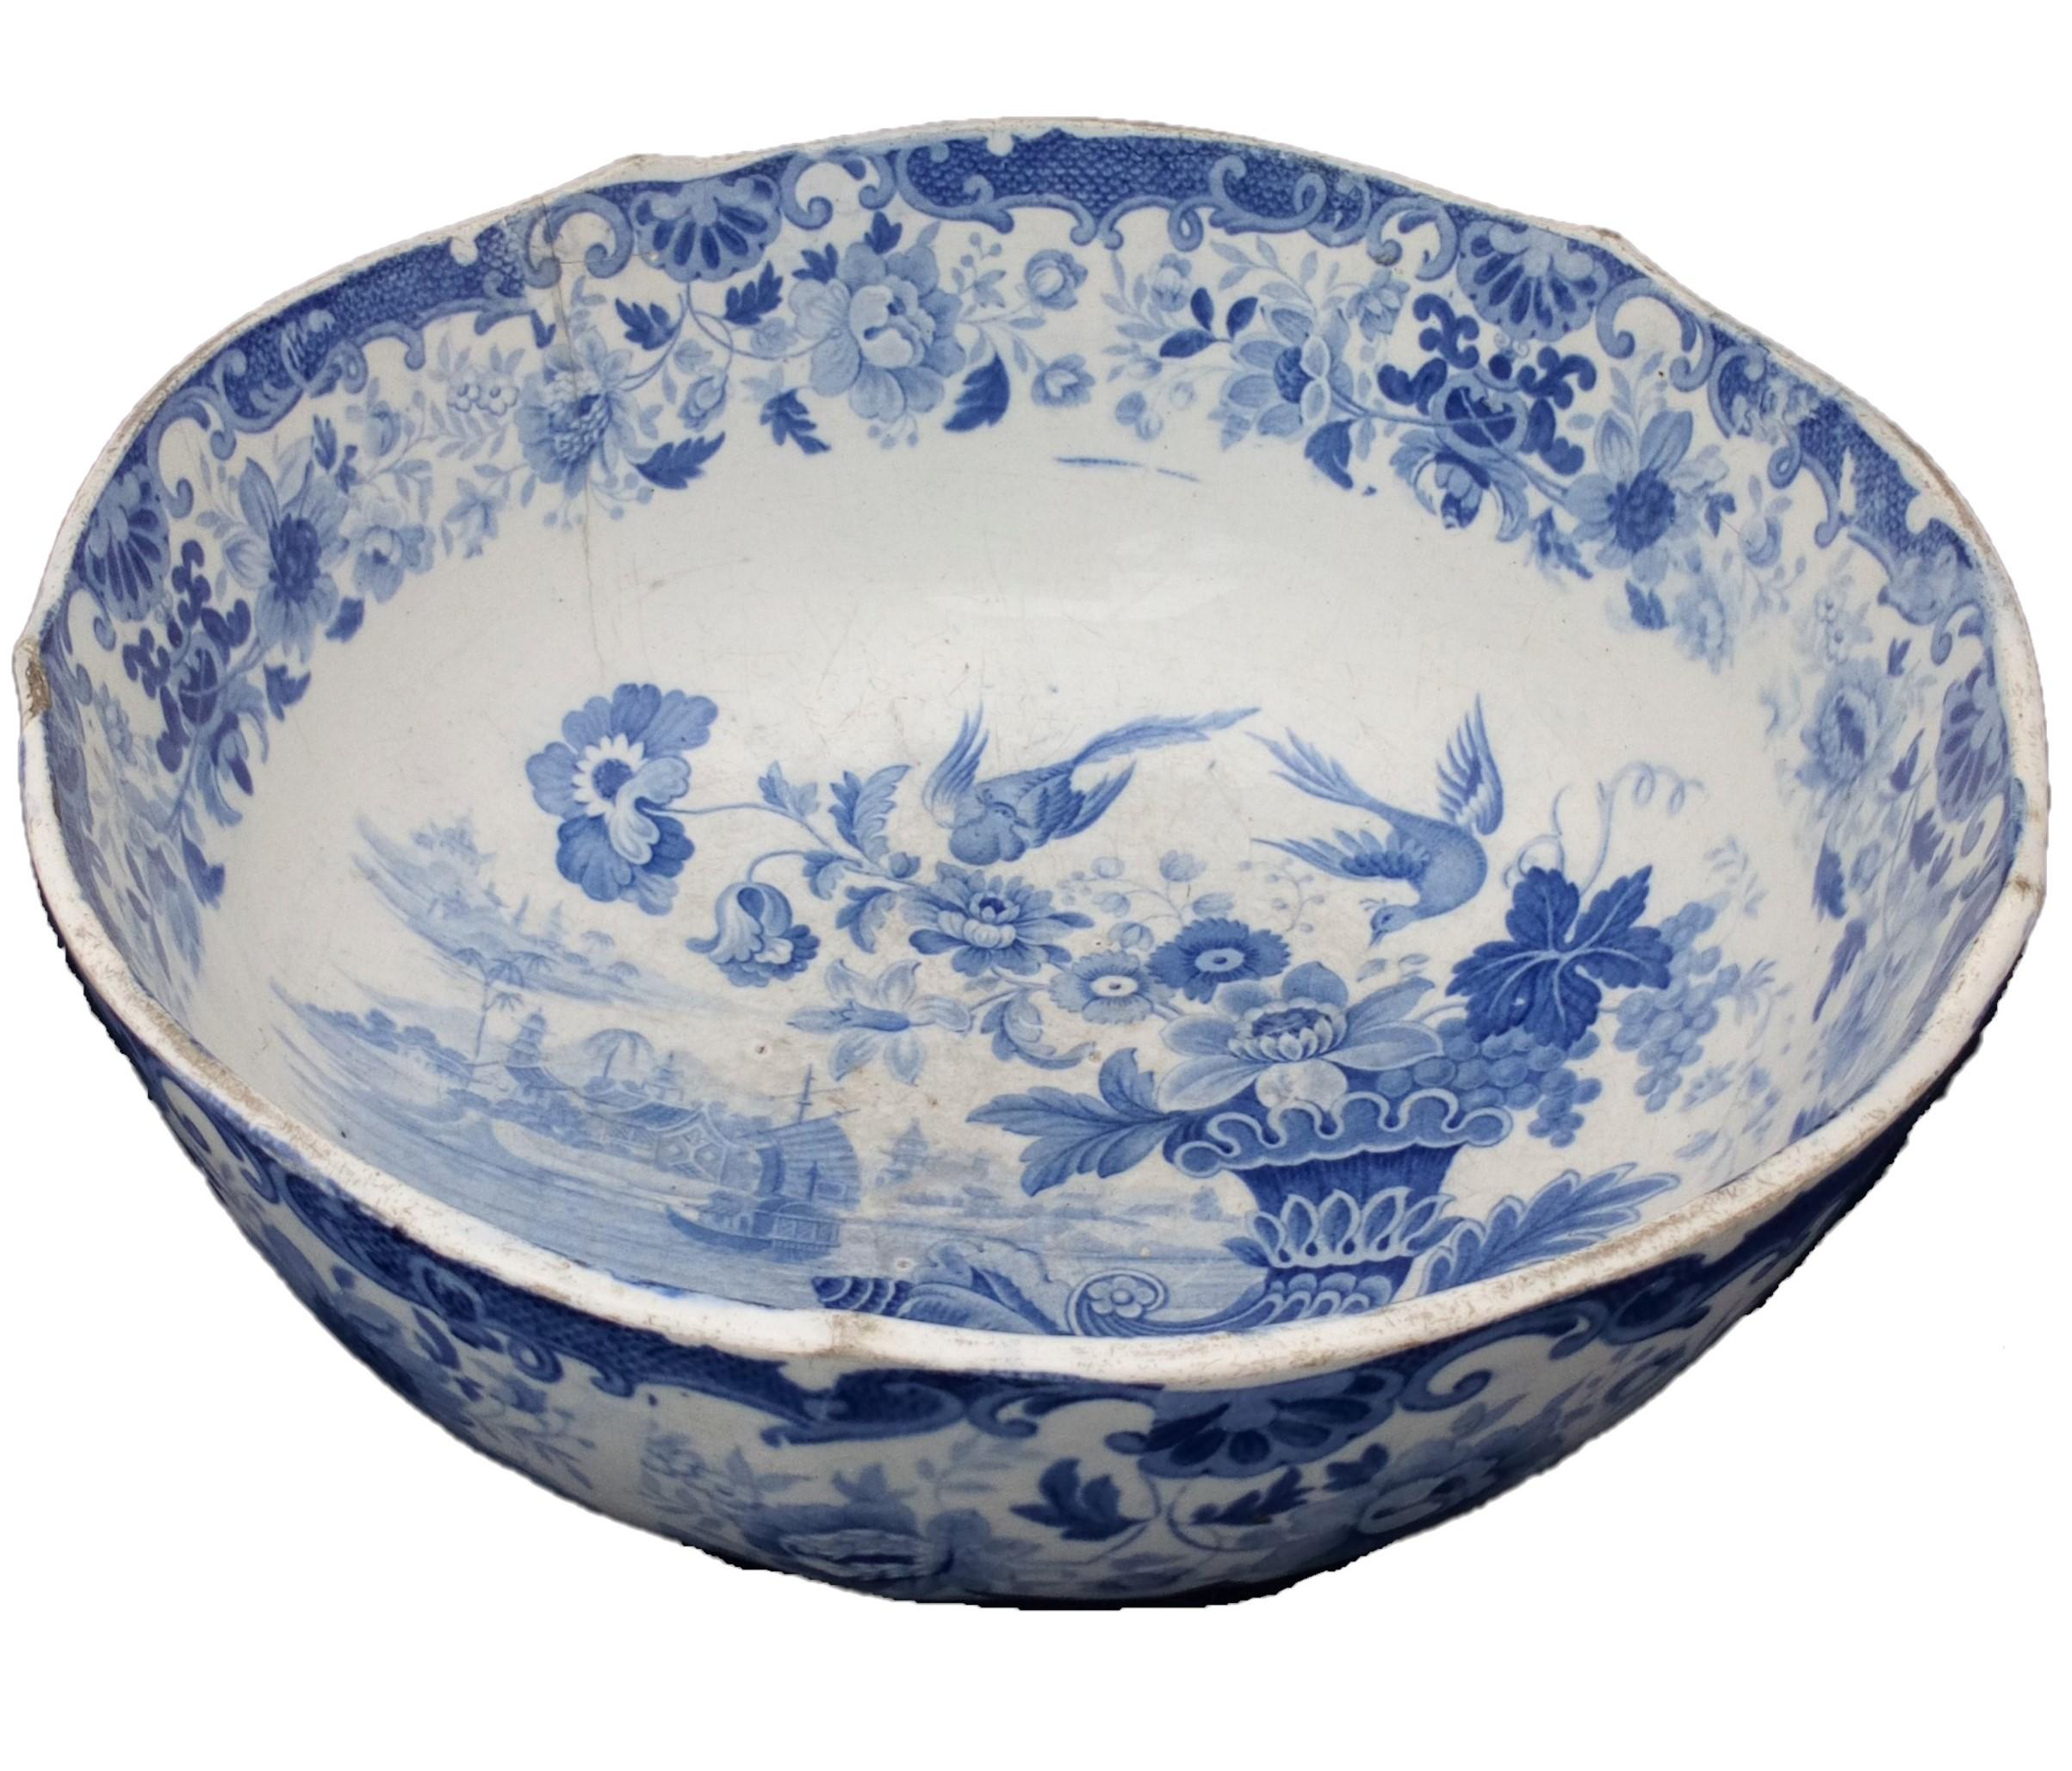 Antique Pearlware Punch Bowl Transfer Printed Oriental Shells Cornucopia Pattern circa 1825